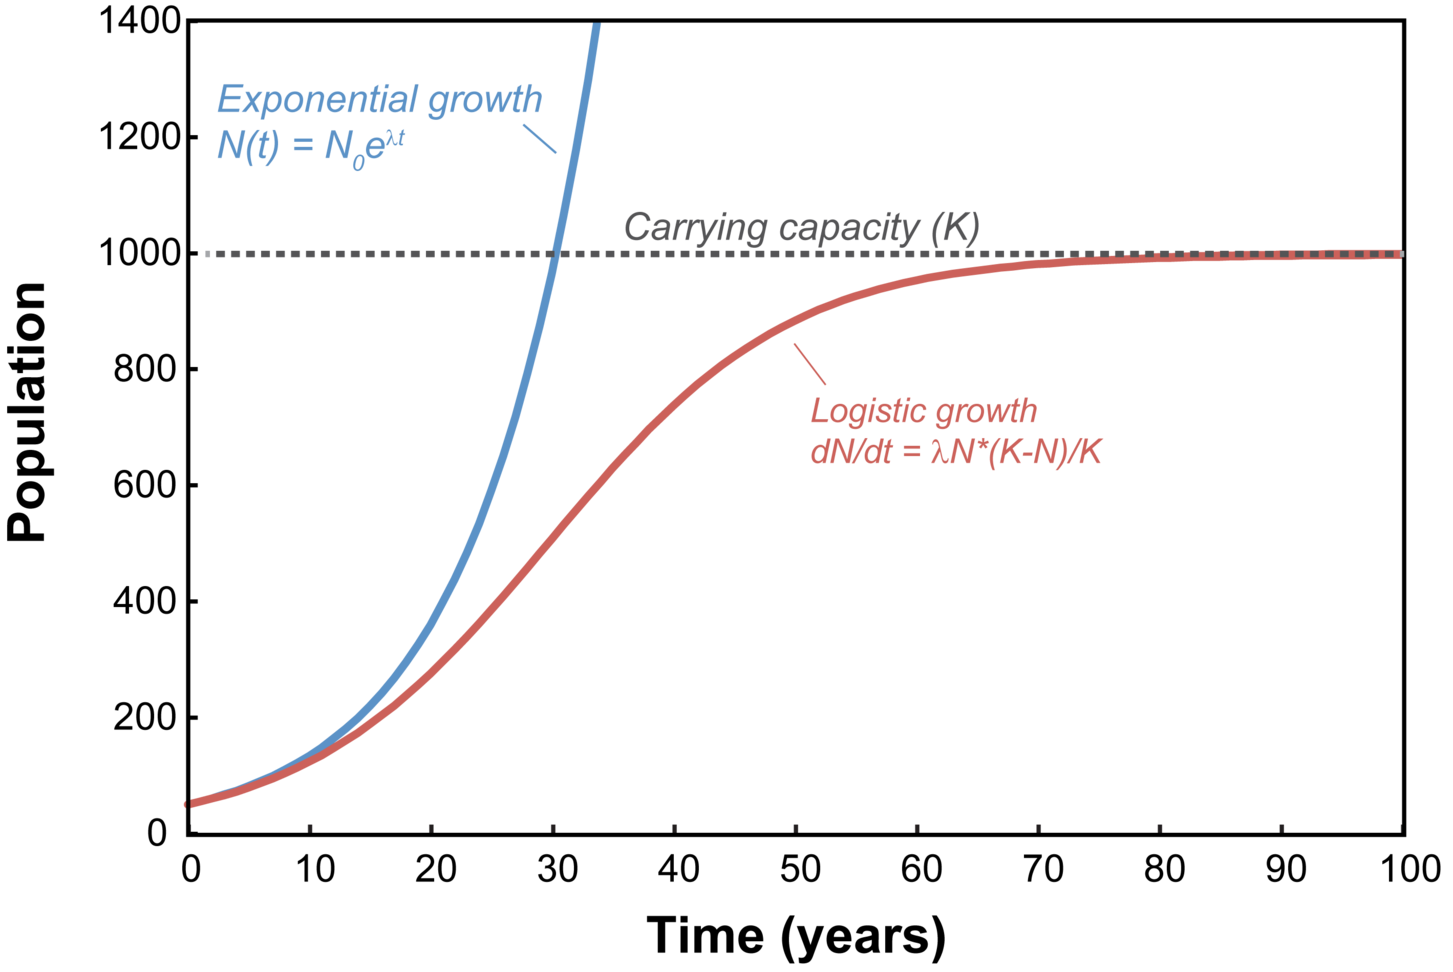 Difference Between Exponential Growth and Exponential Decay